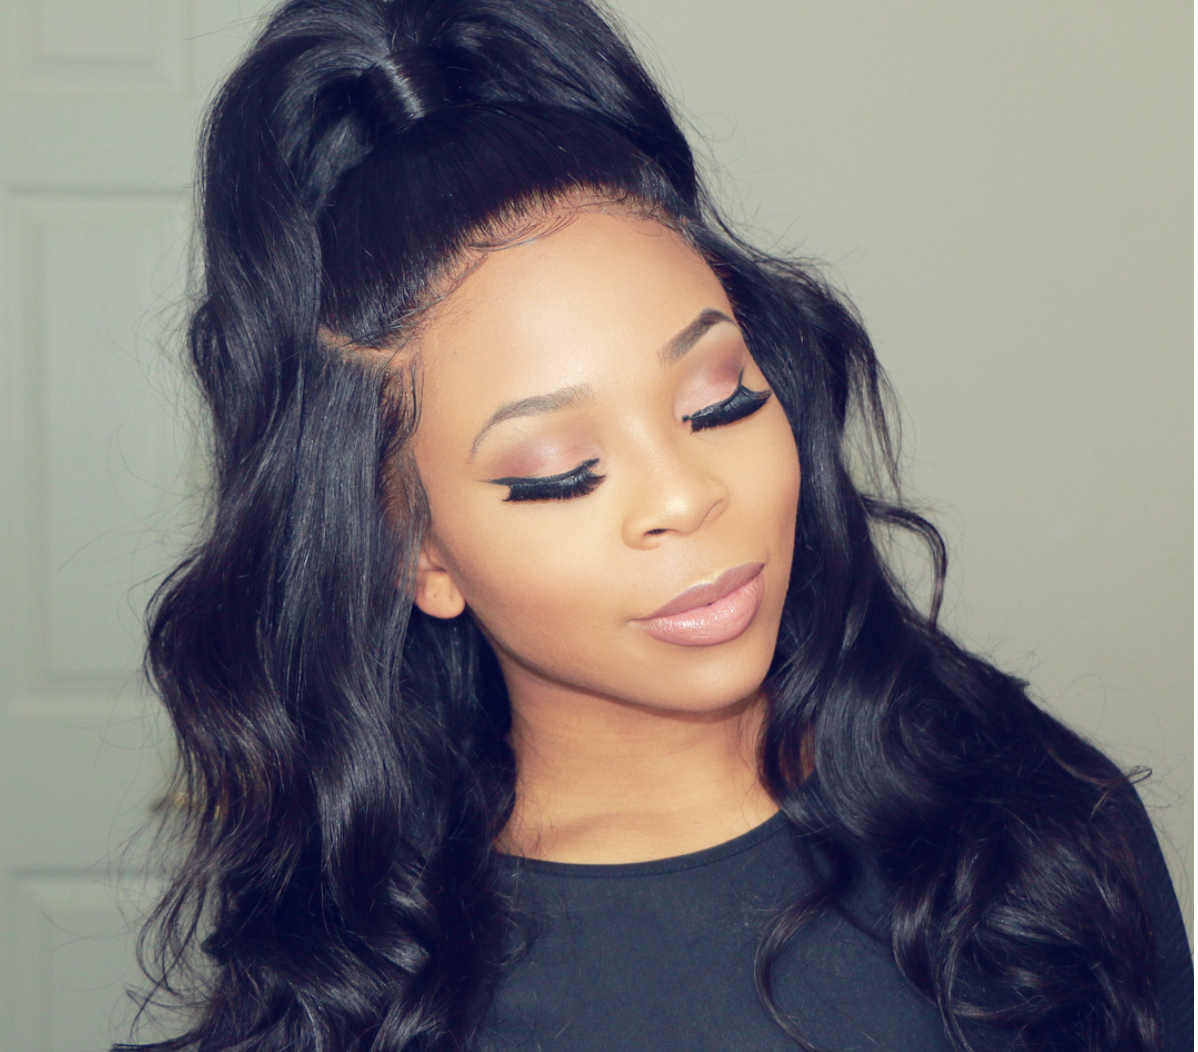 Lace Front Wig Half Up Half Down Done By Simone Sharice Human Hair Wigs Wig Hairstyles Weave Hairstyles